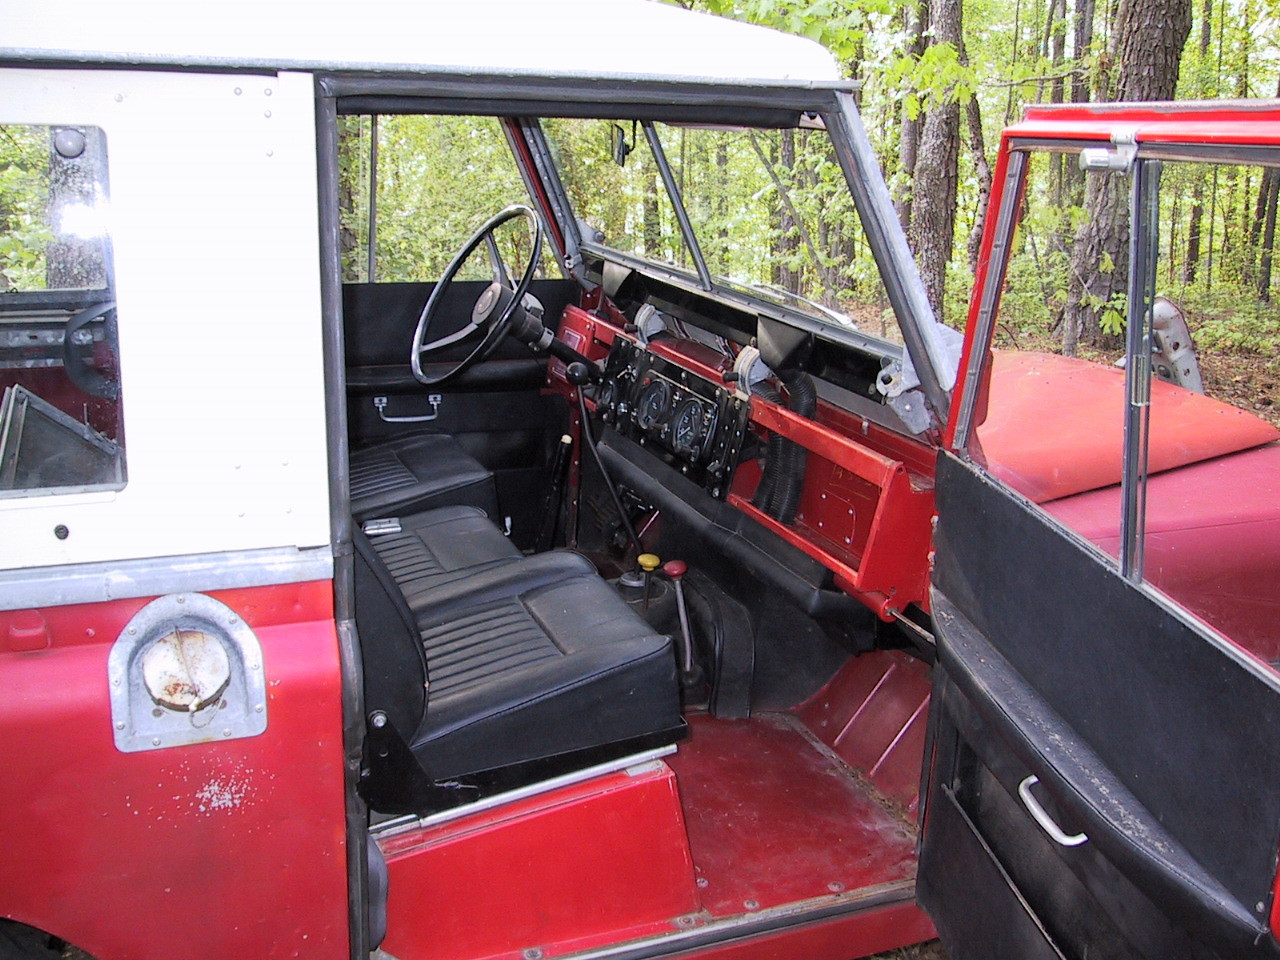 This is what a completely stock unmolested 1971 interior looked like - it was as nice an original interior as I've ever seen in a Series truck.